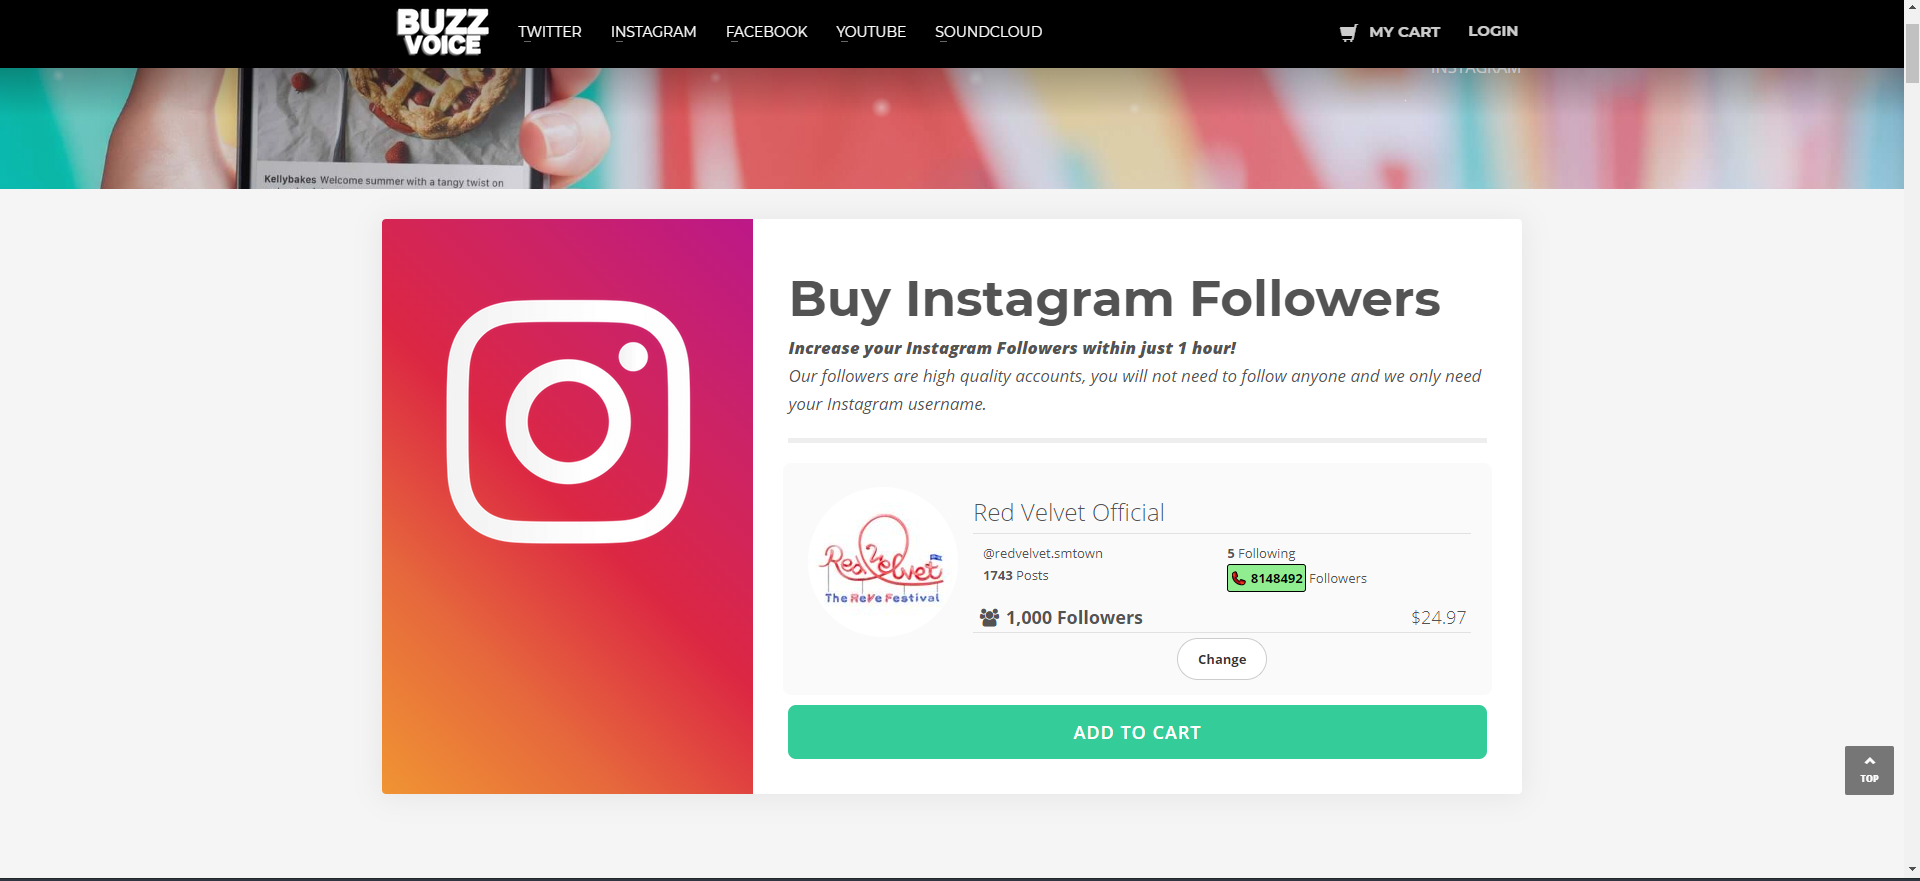 Buy IG Followers from BuzzVoice